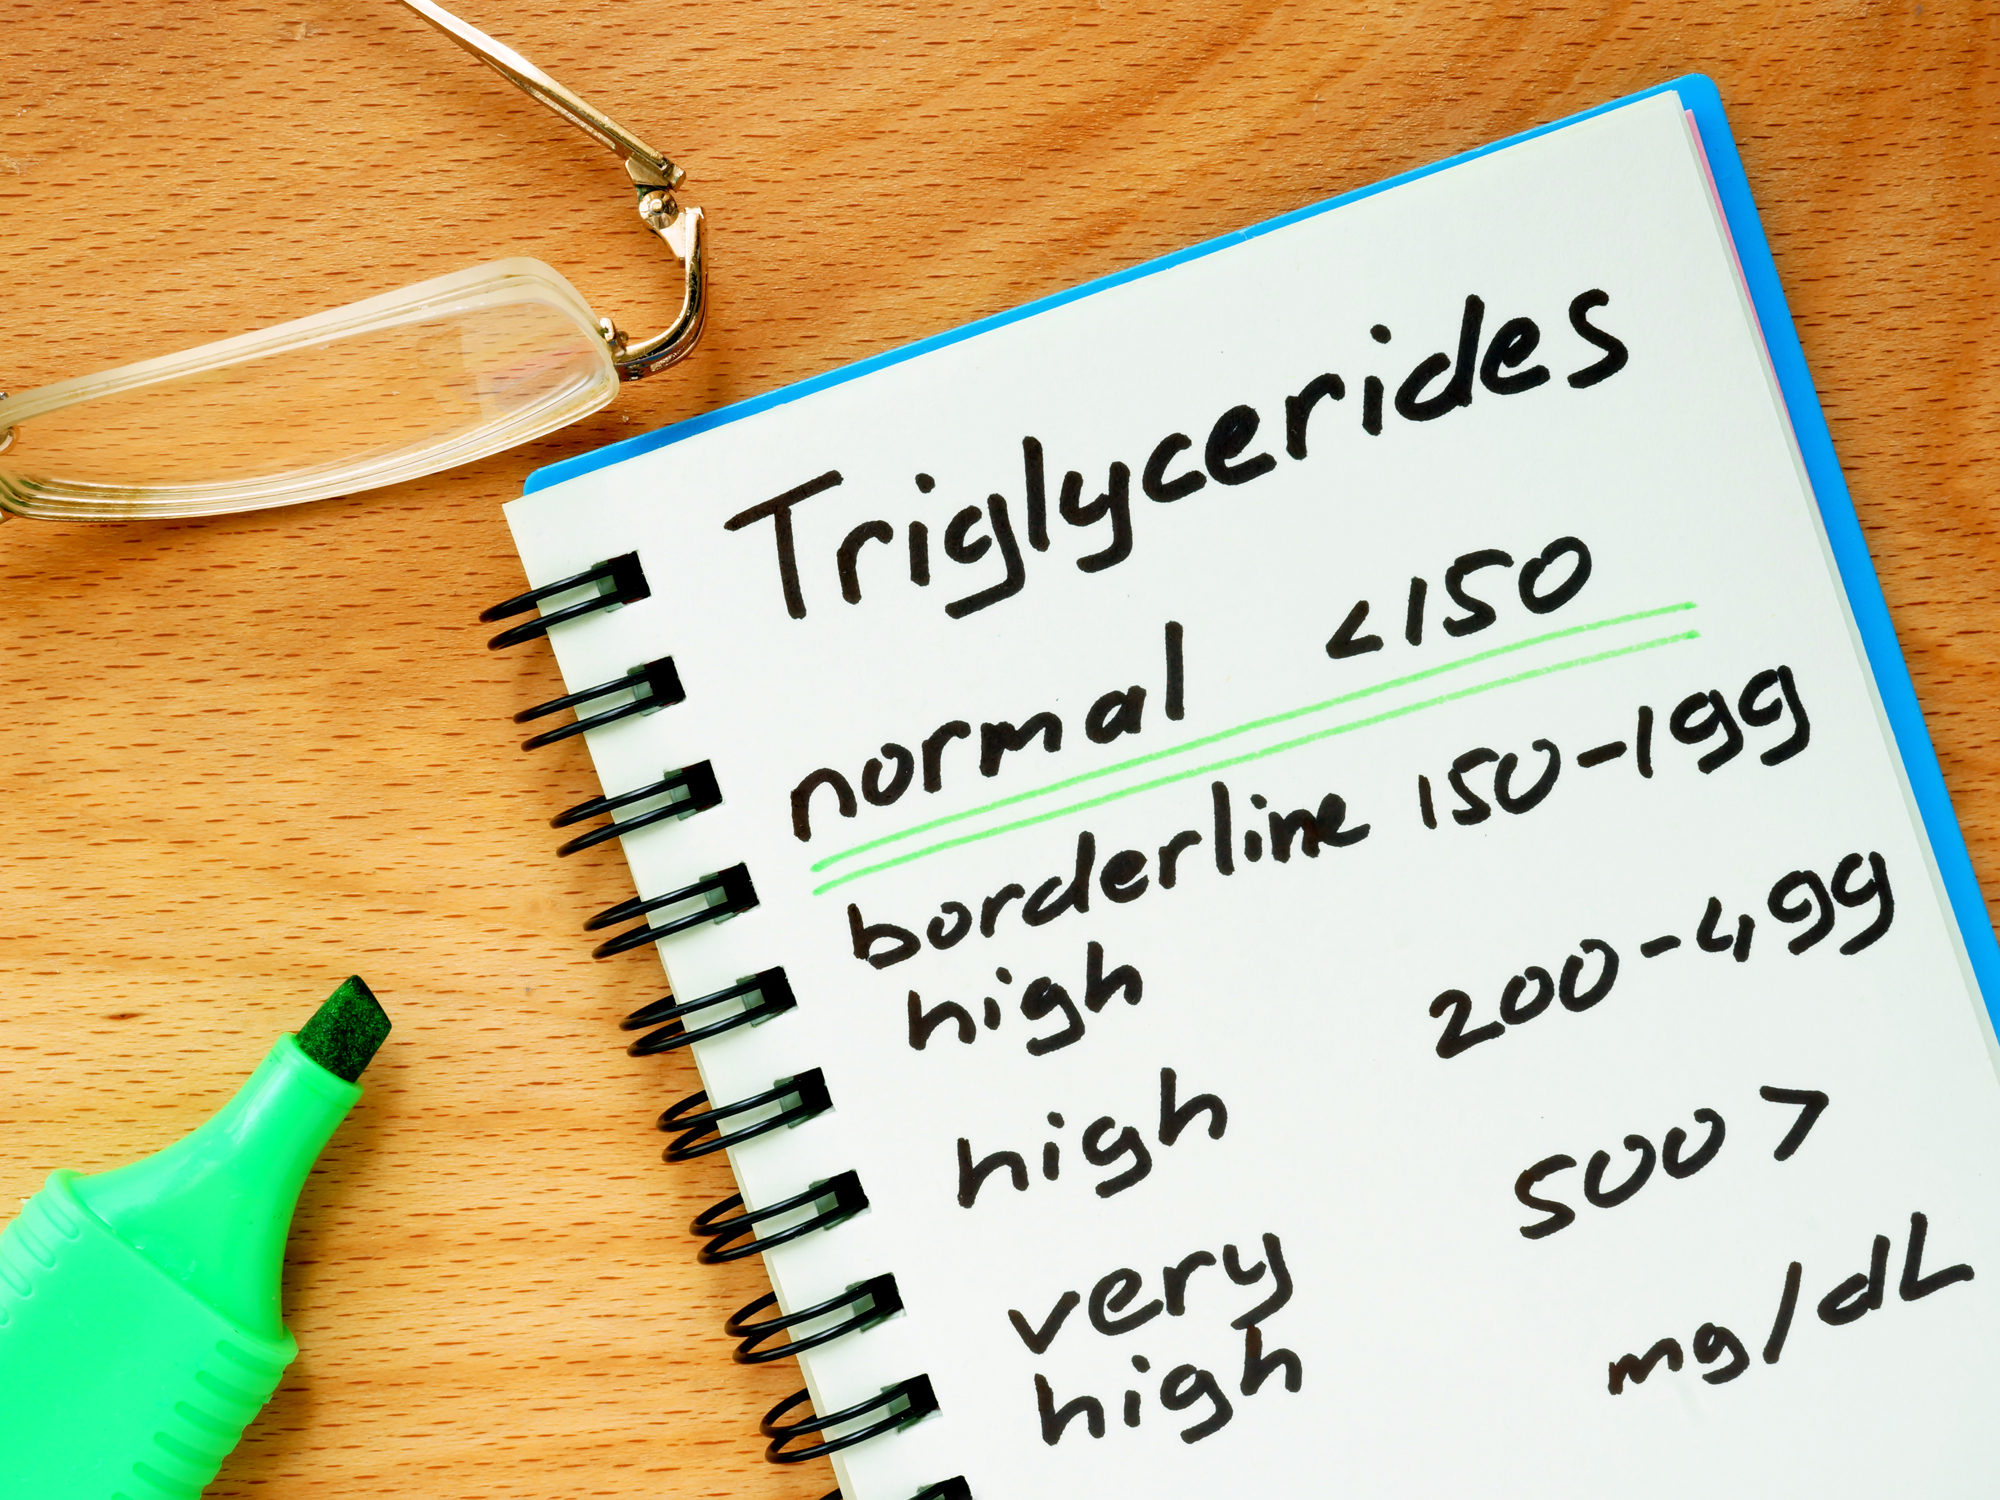 4 ways to lower triglycerides without statins